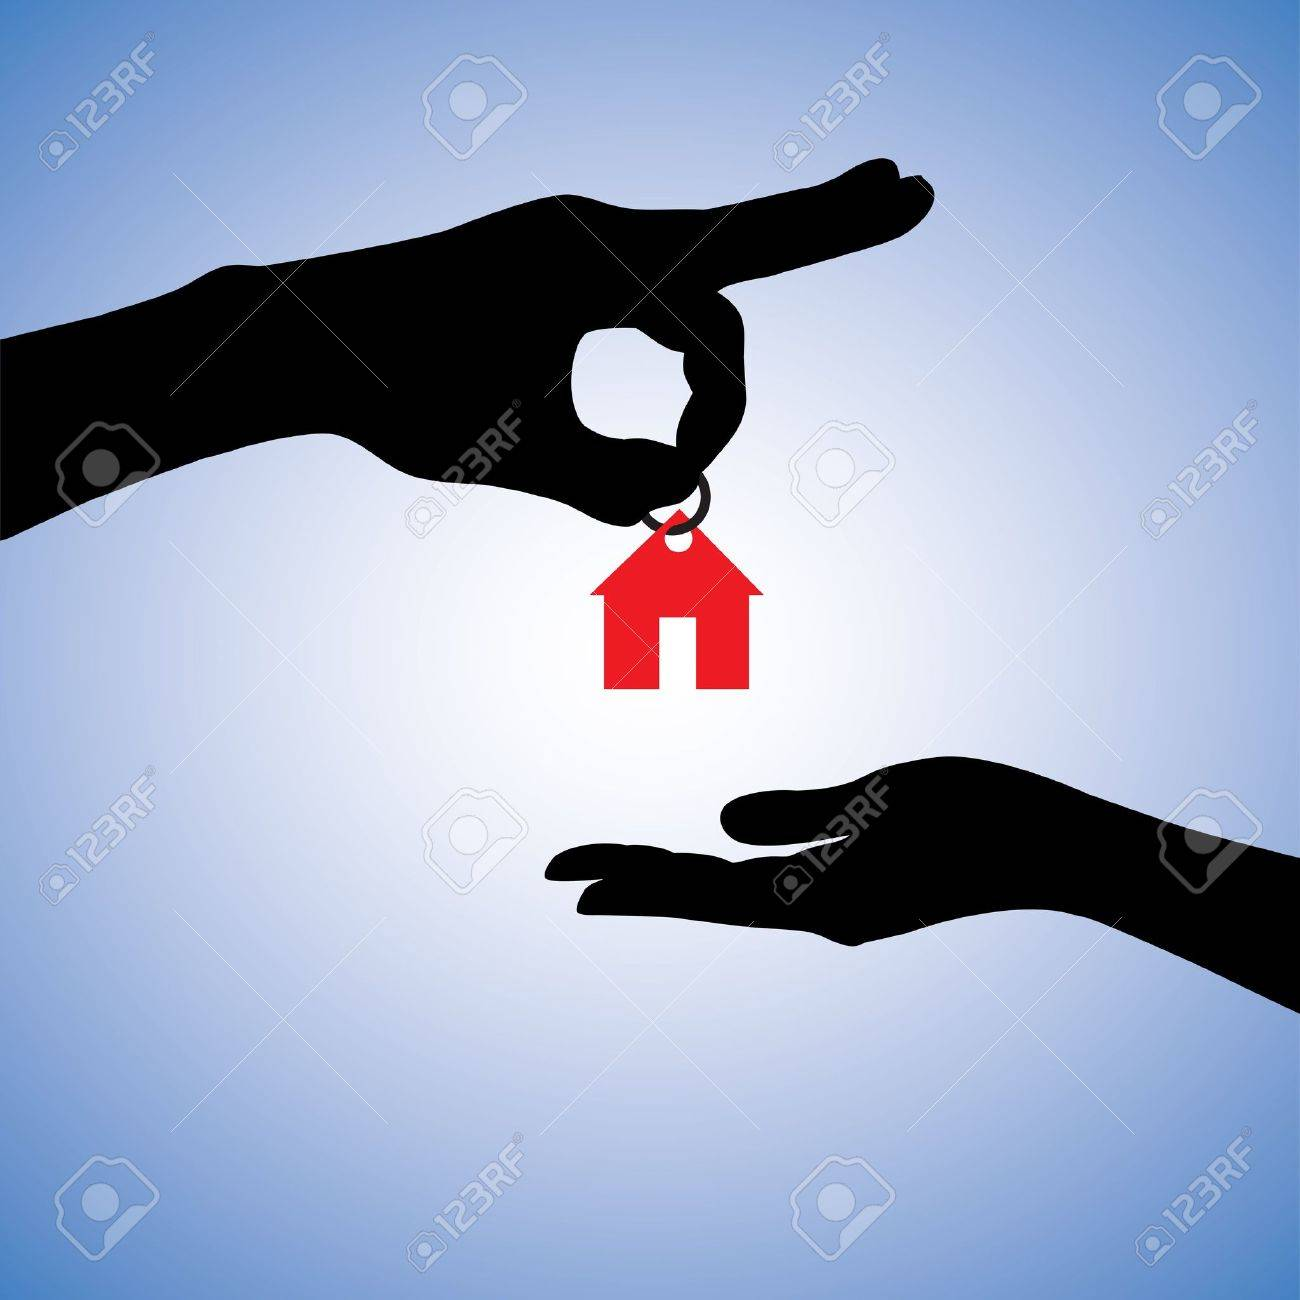 Concept illustration of selling or gifting house in real estate market. The hand holding a red house key chain is the seller or the owner and the arm receiving the house key is the buyer or purchaser. Stock Vector - 14715683